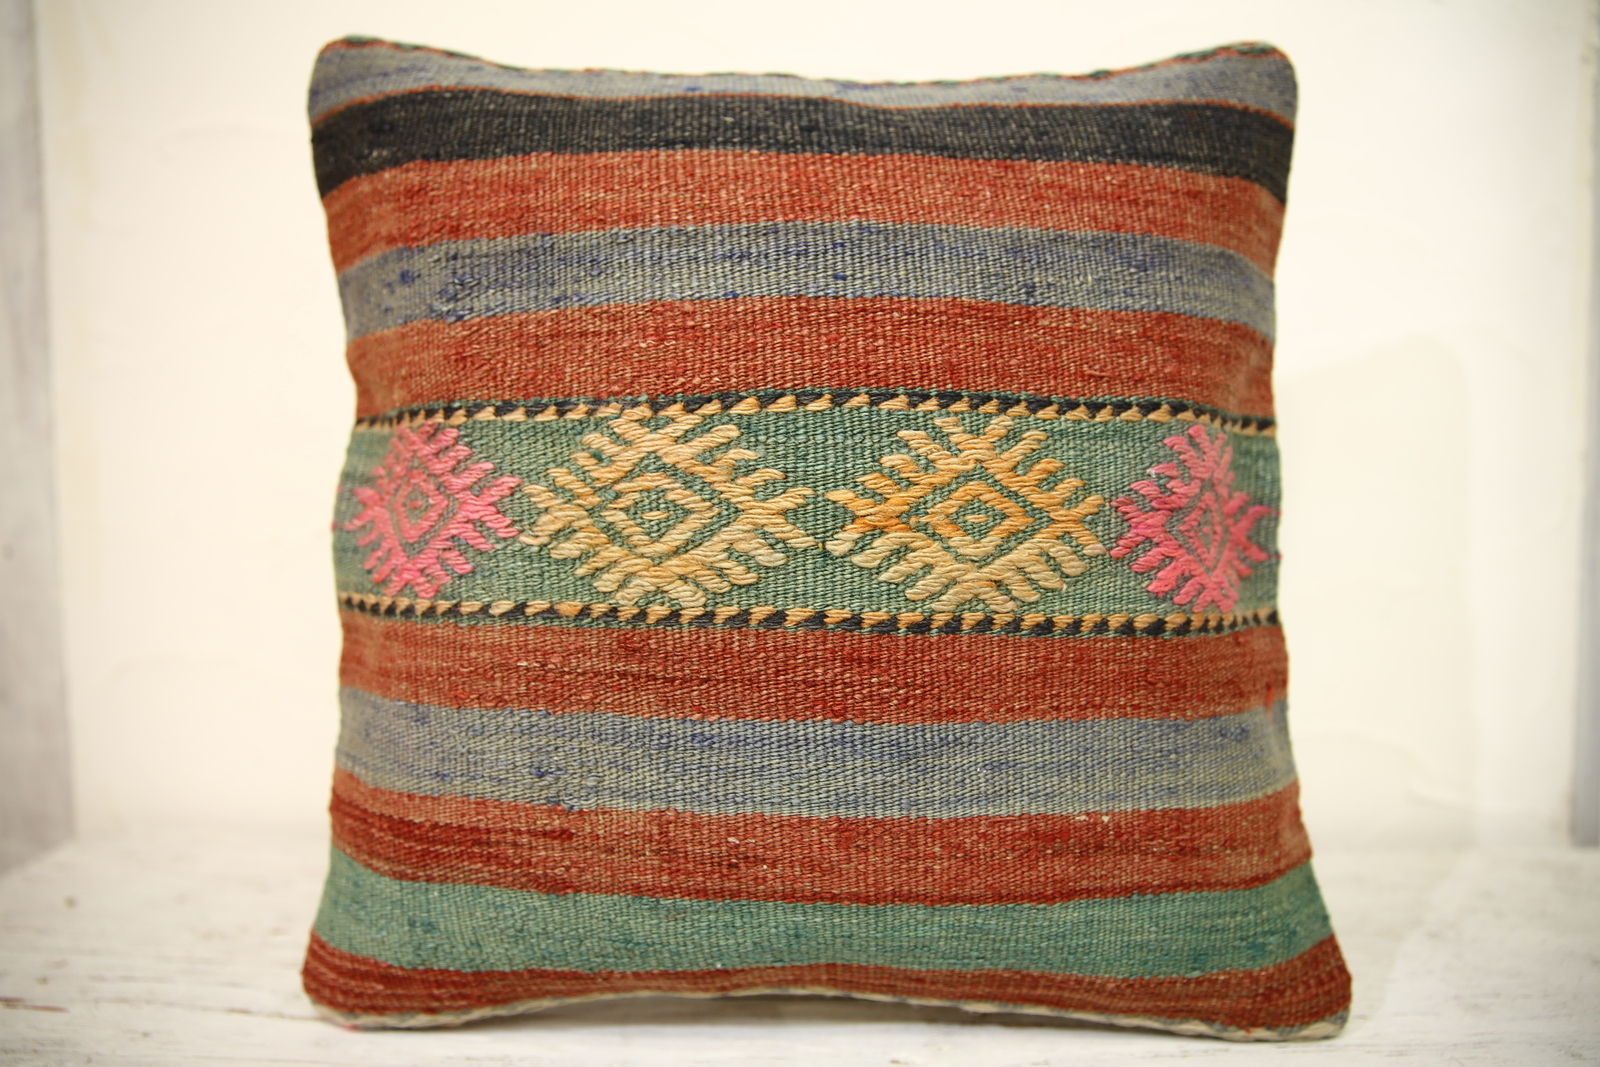 Kilim Pillows |16x16 | Decorative Pillows | 1341 | Accent Pillows turkish pillow